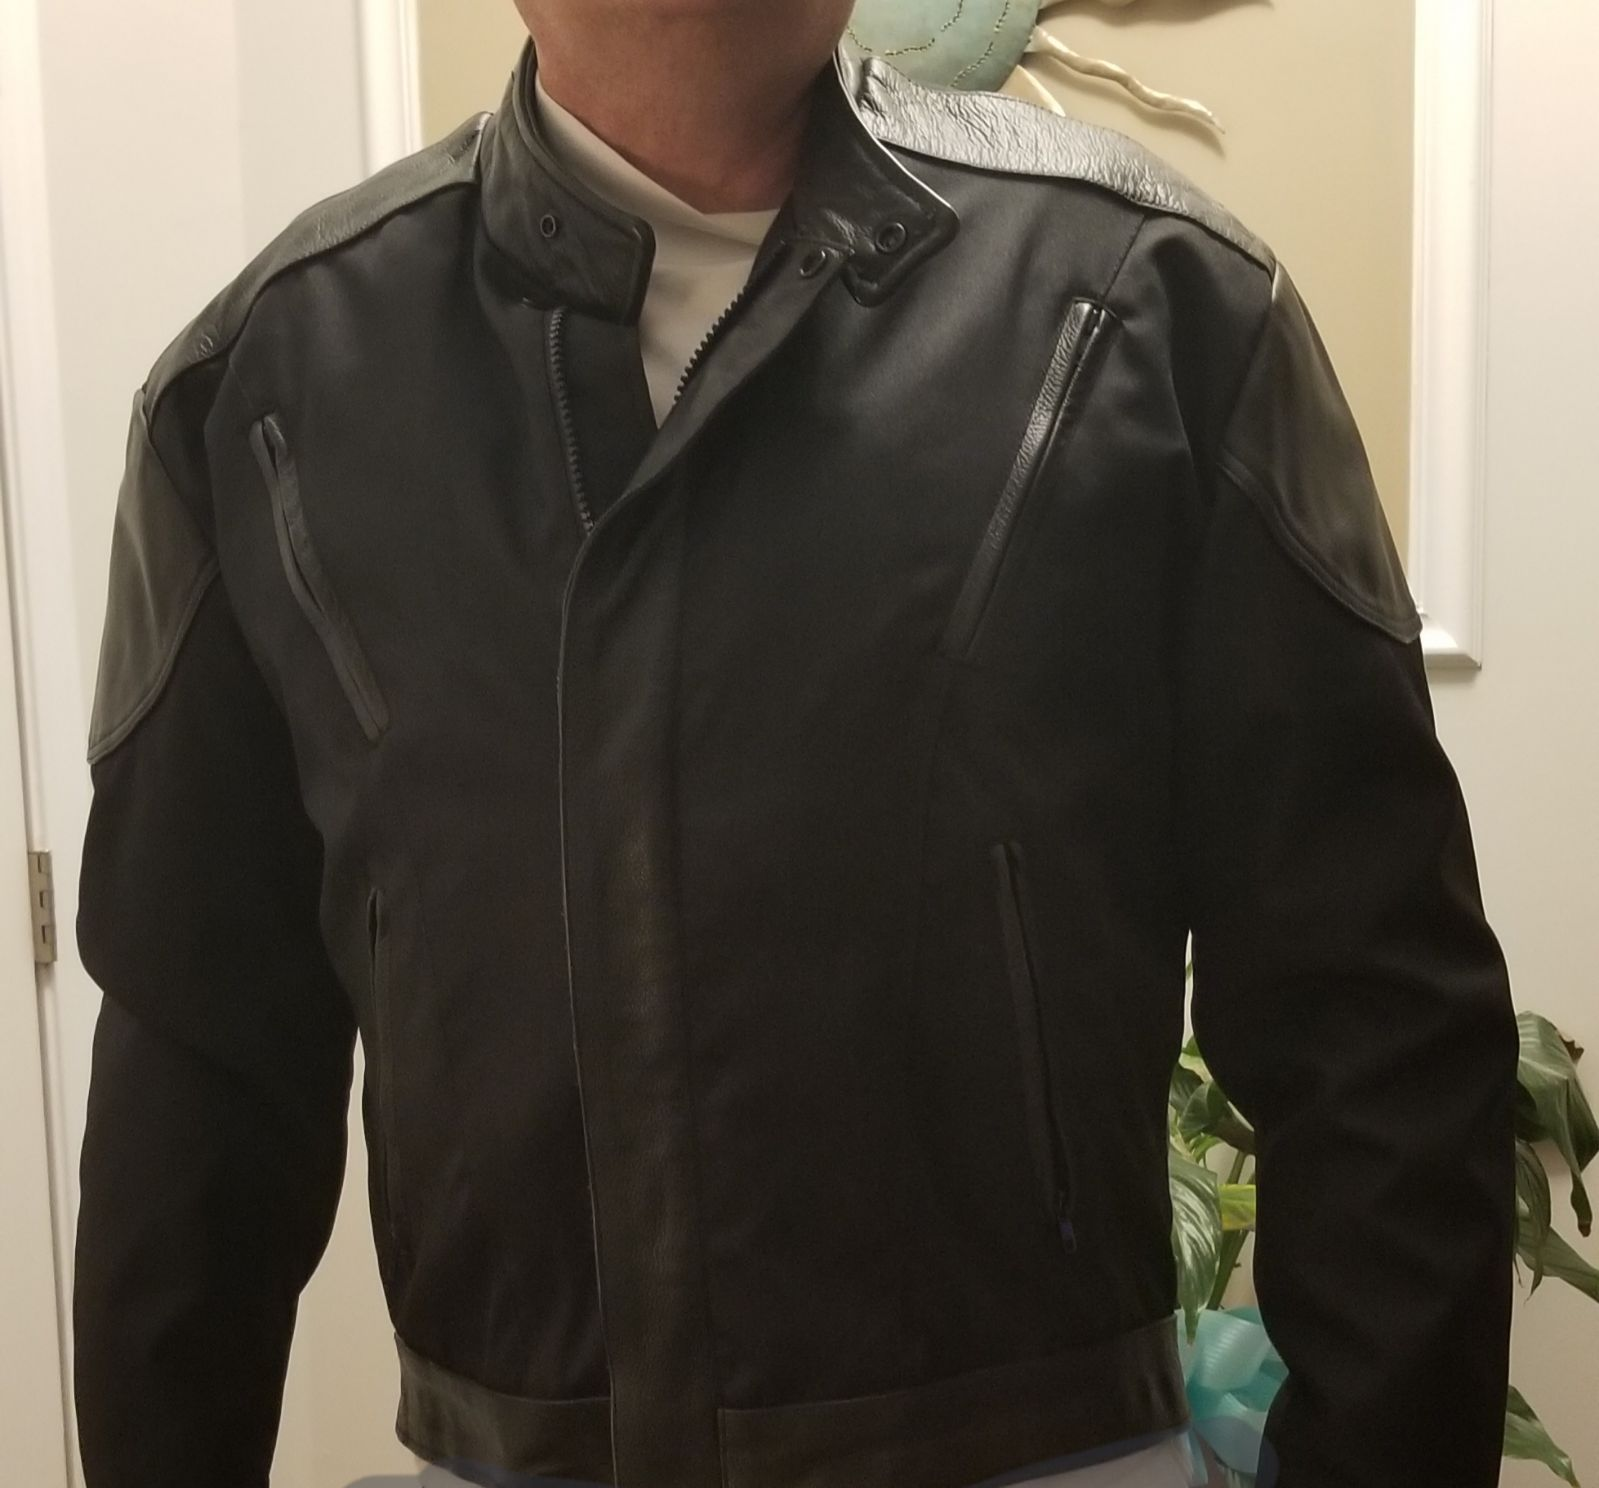 Very Nice, Partial Leather Riding Jacket